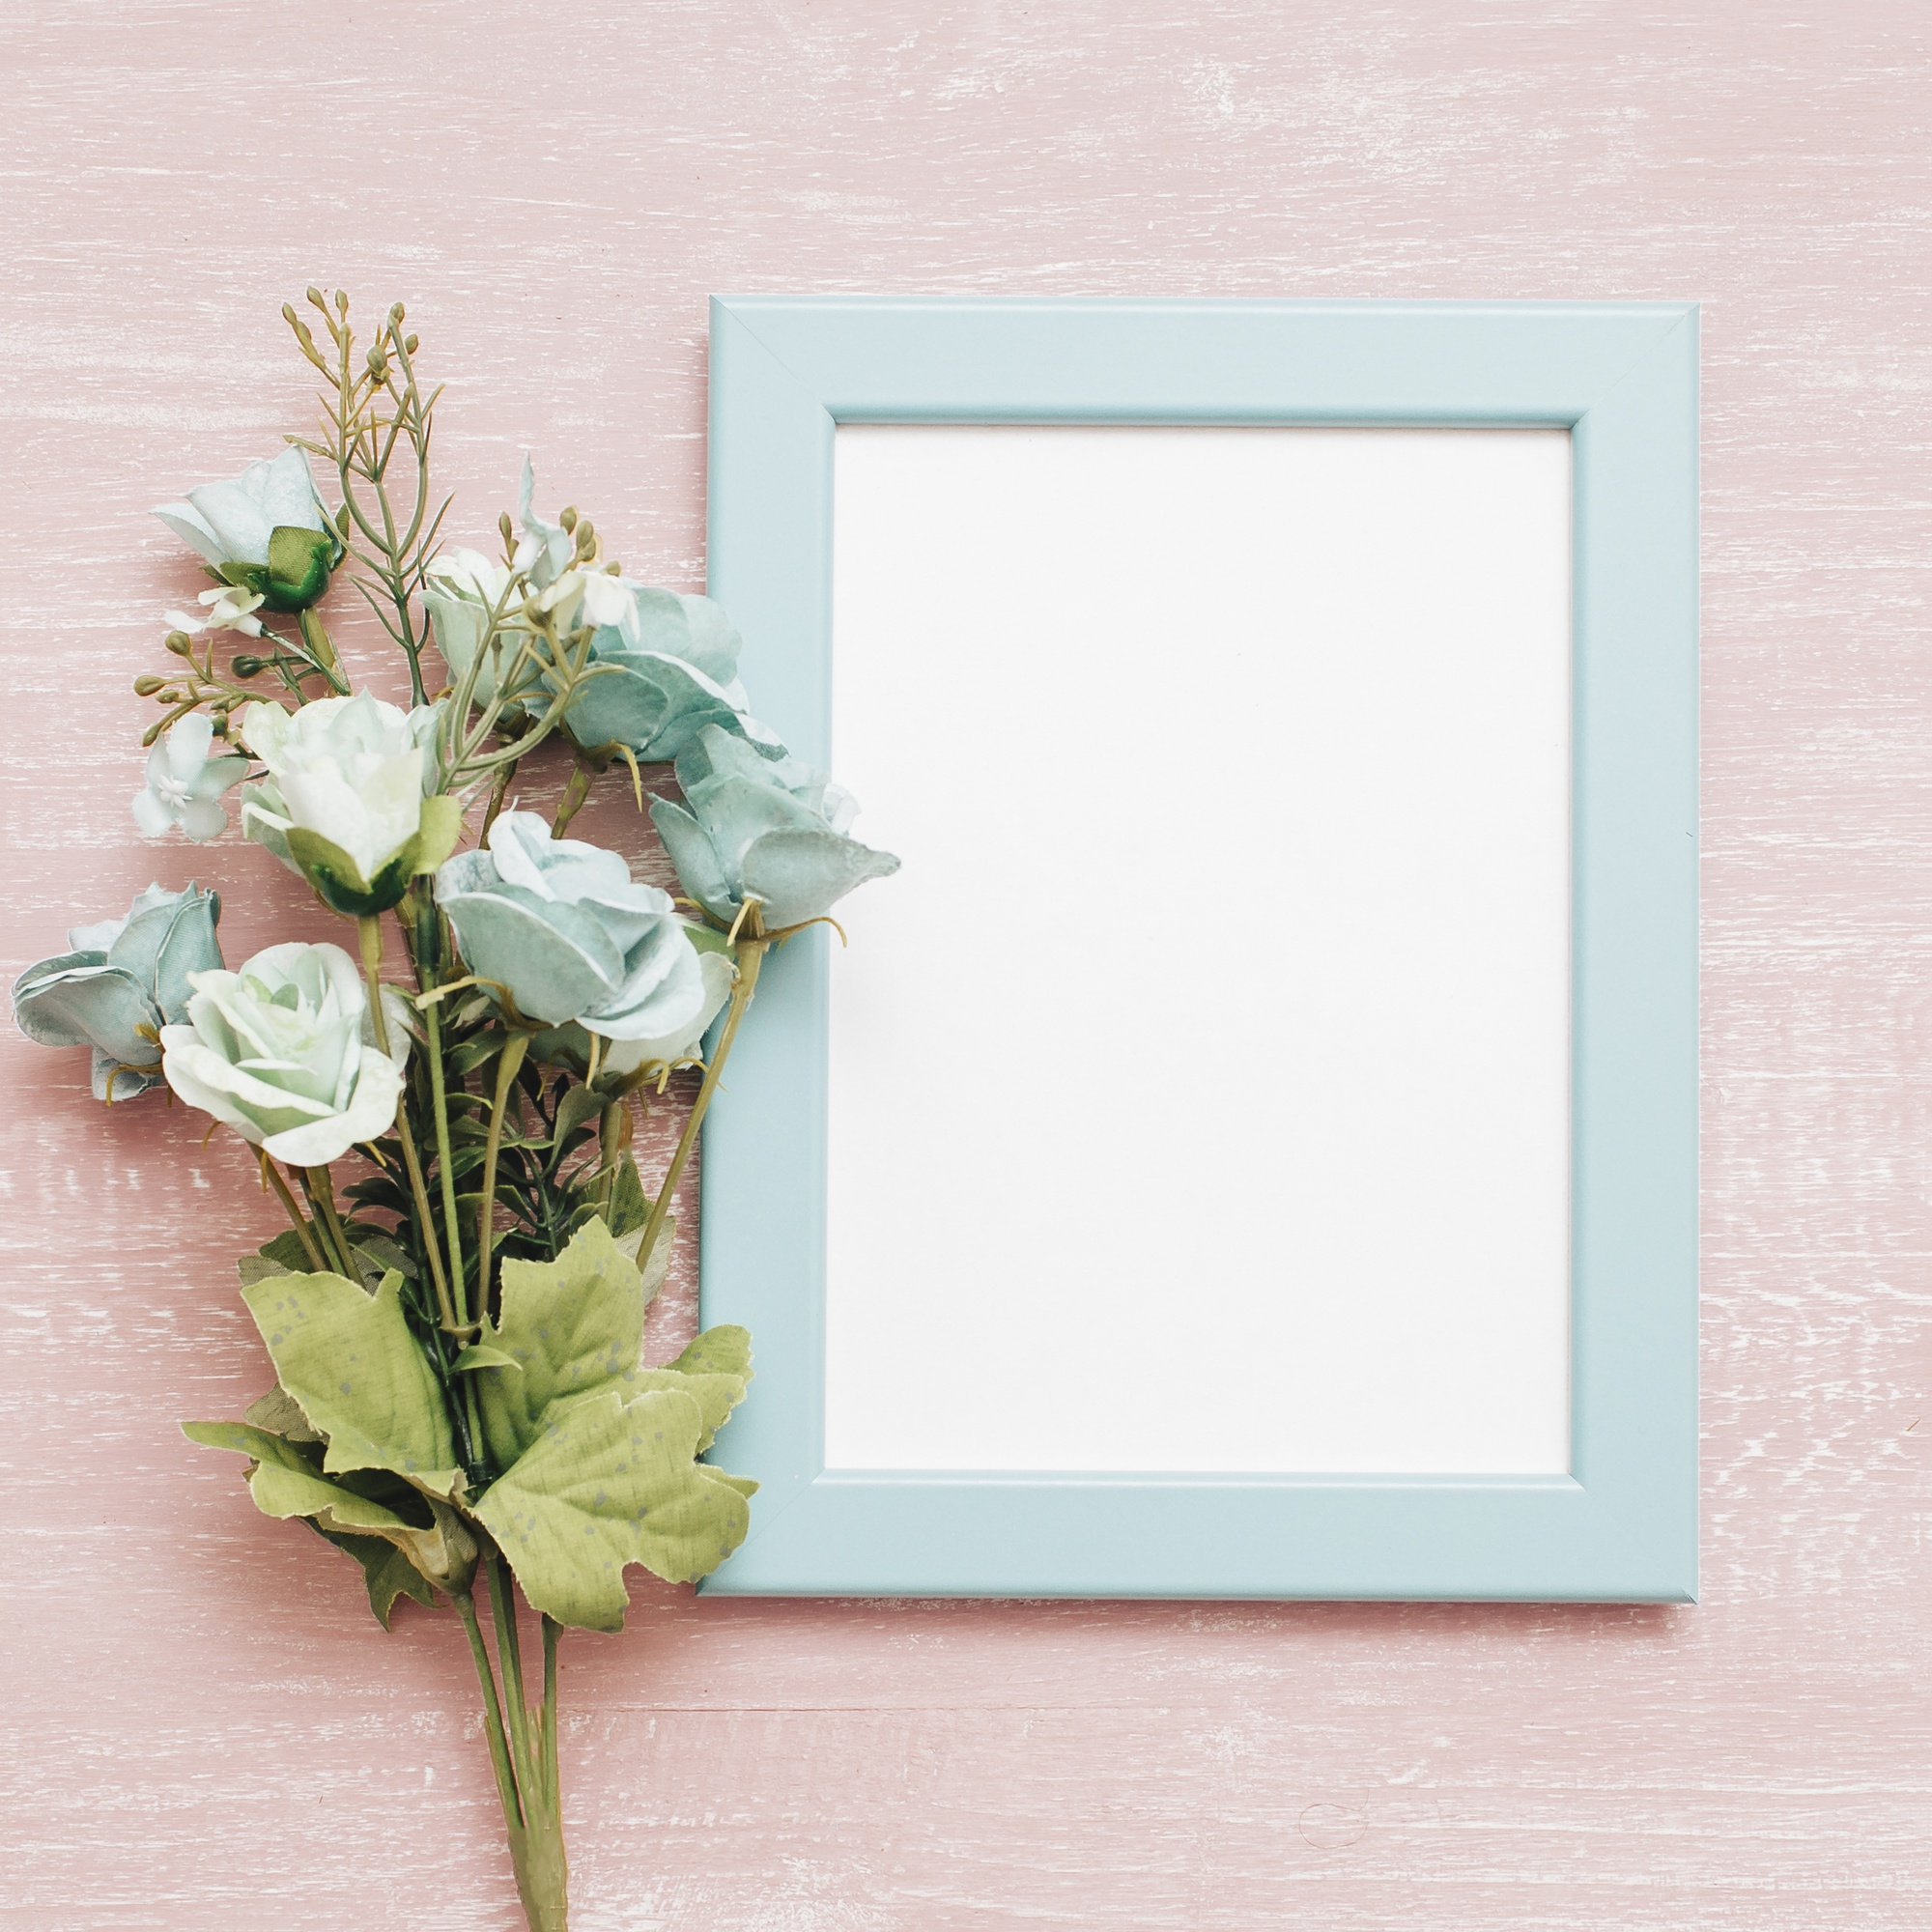 Blue frame with bouquet of peonies